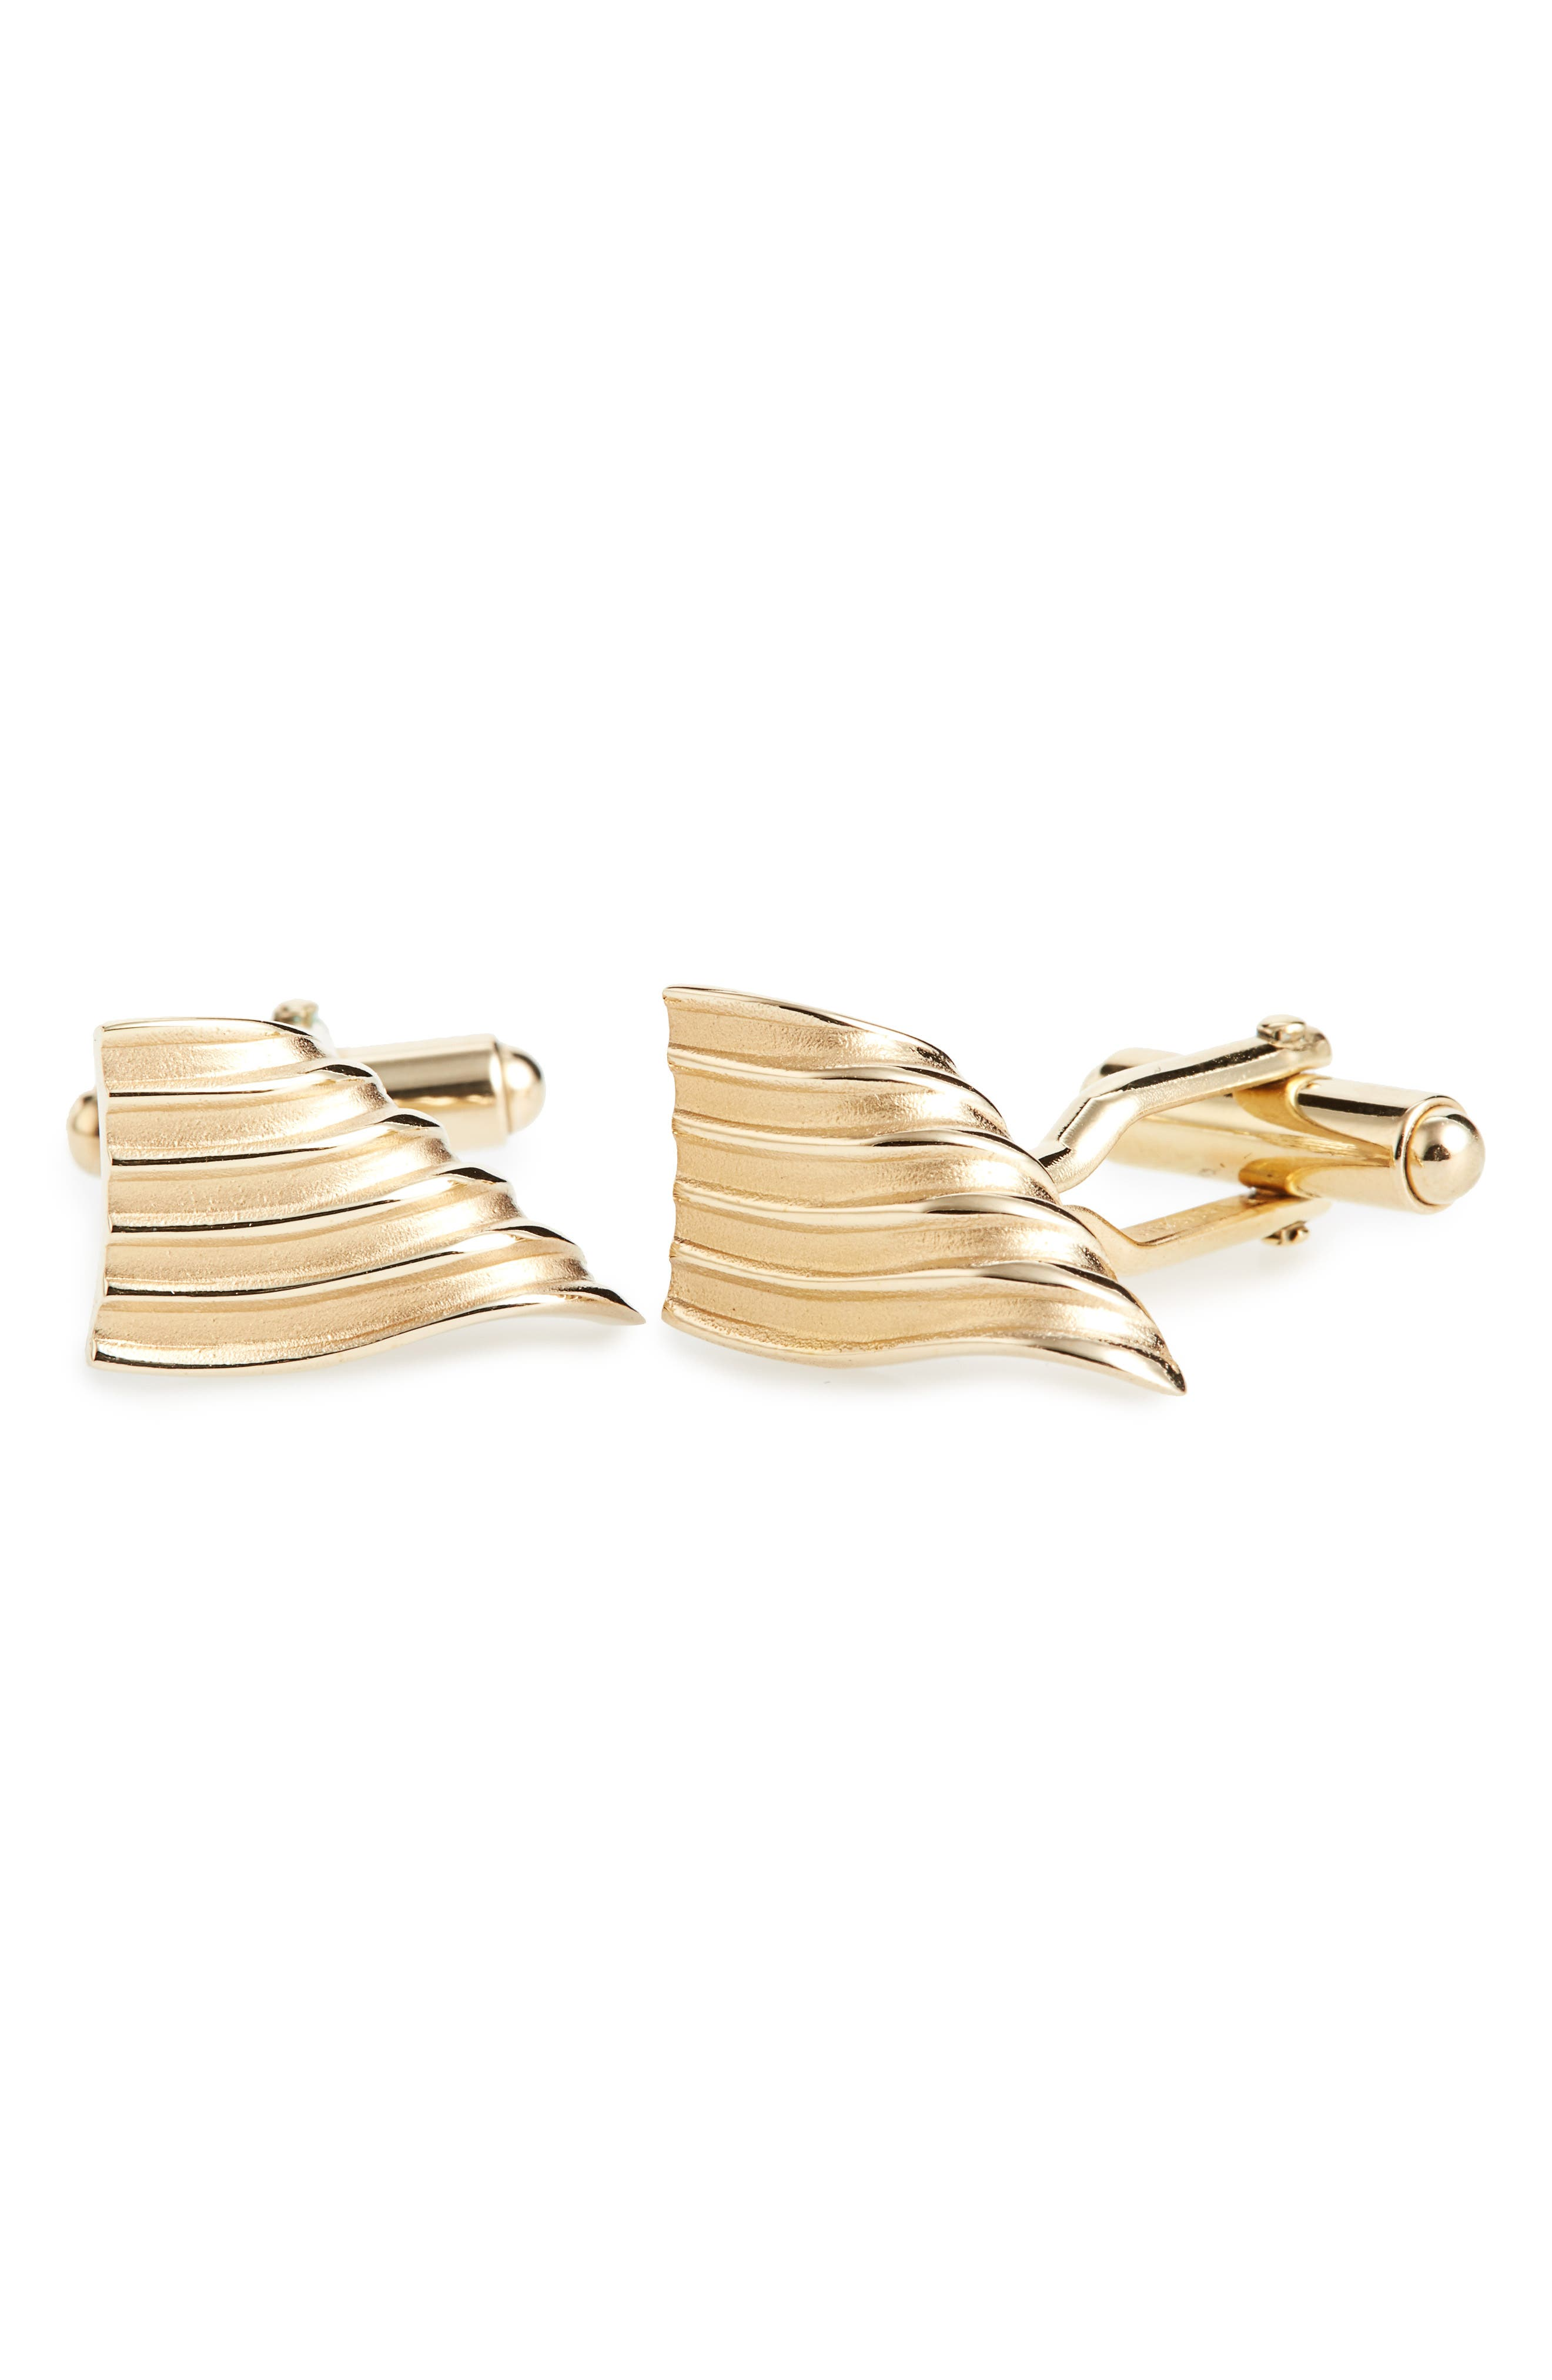 Curved & Grooved Cuff Links,                         Main,                         color, Metallic